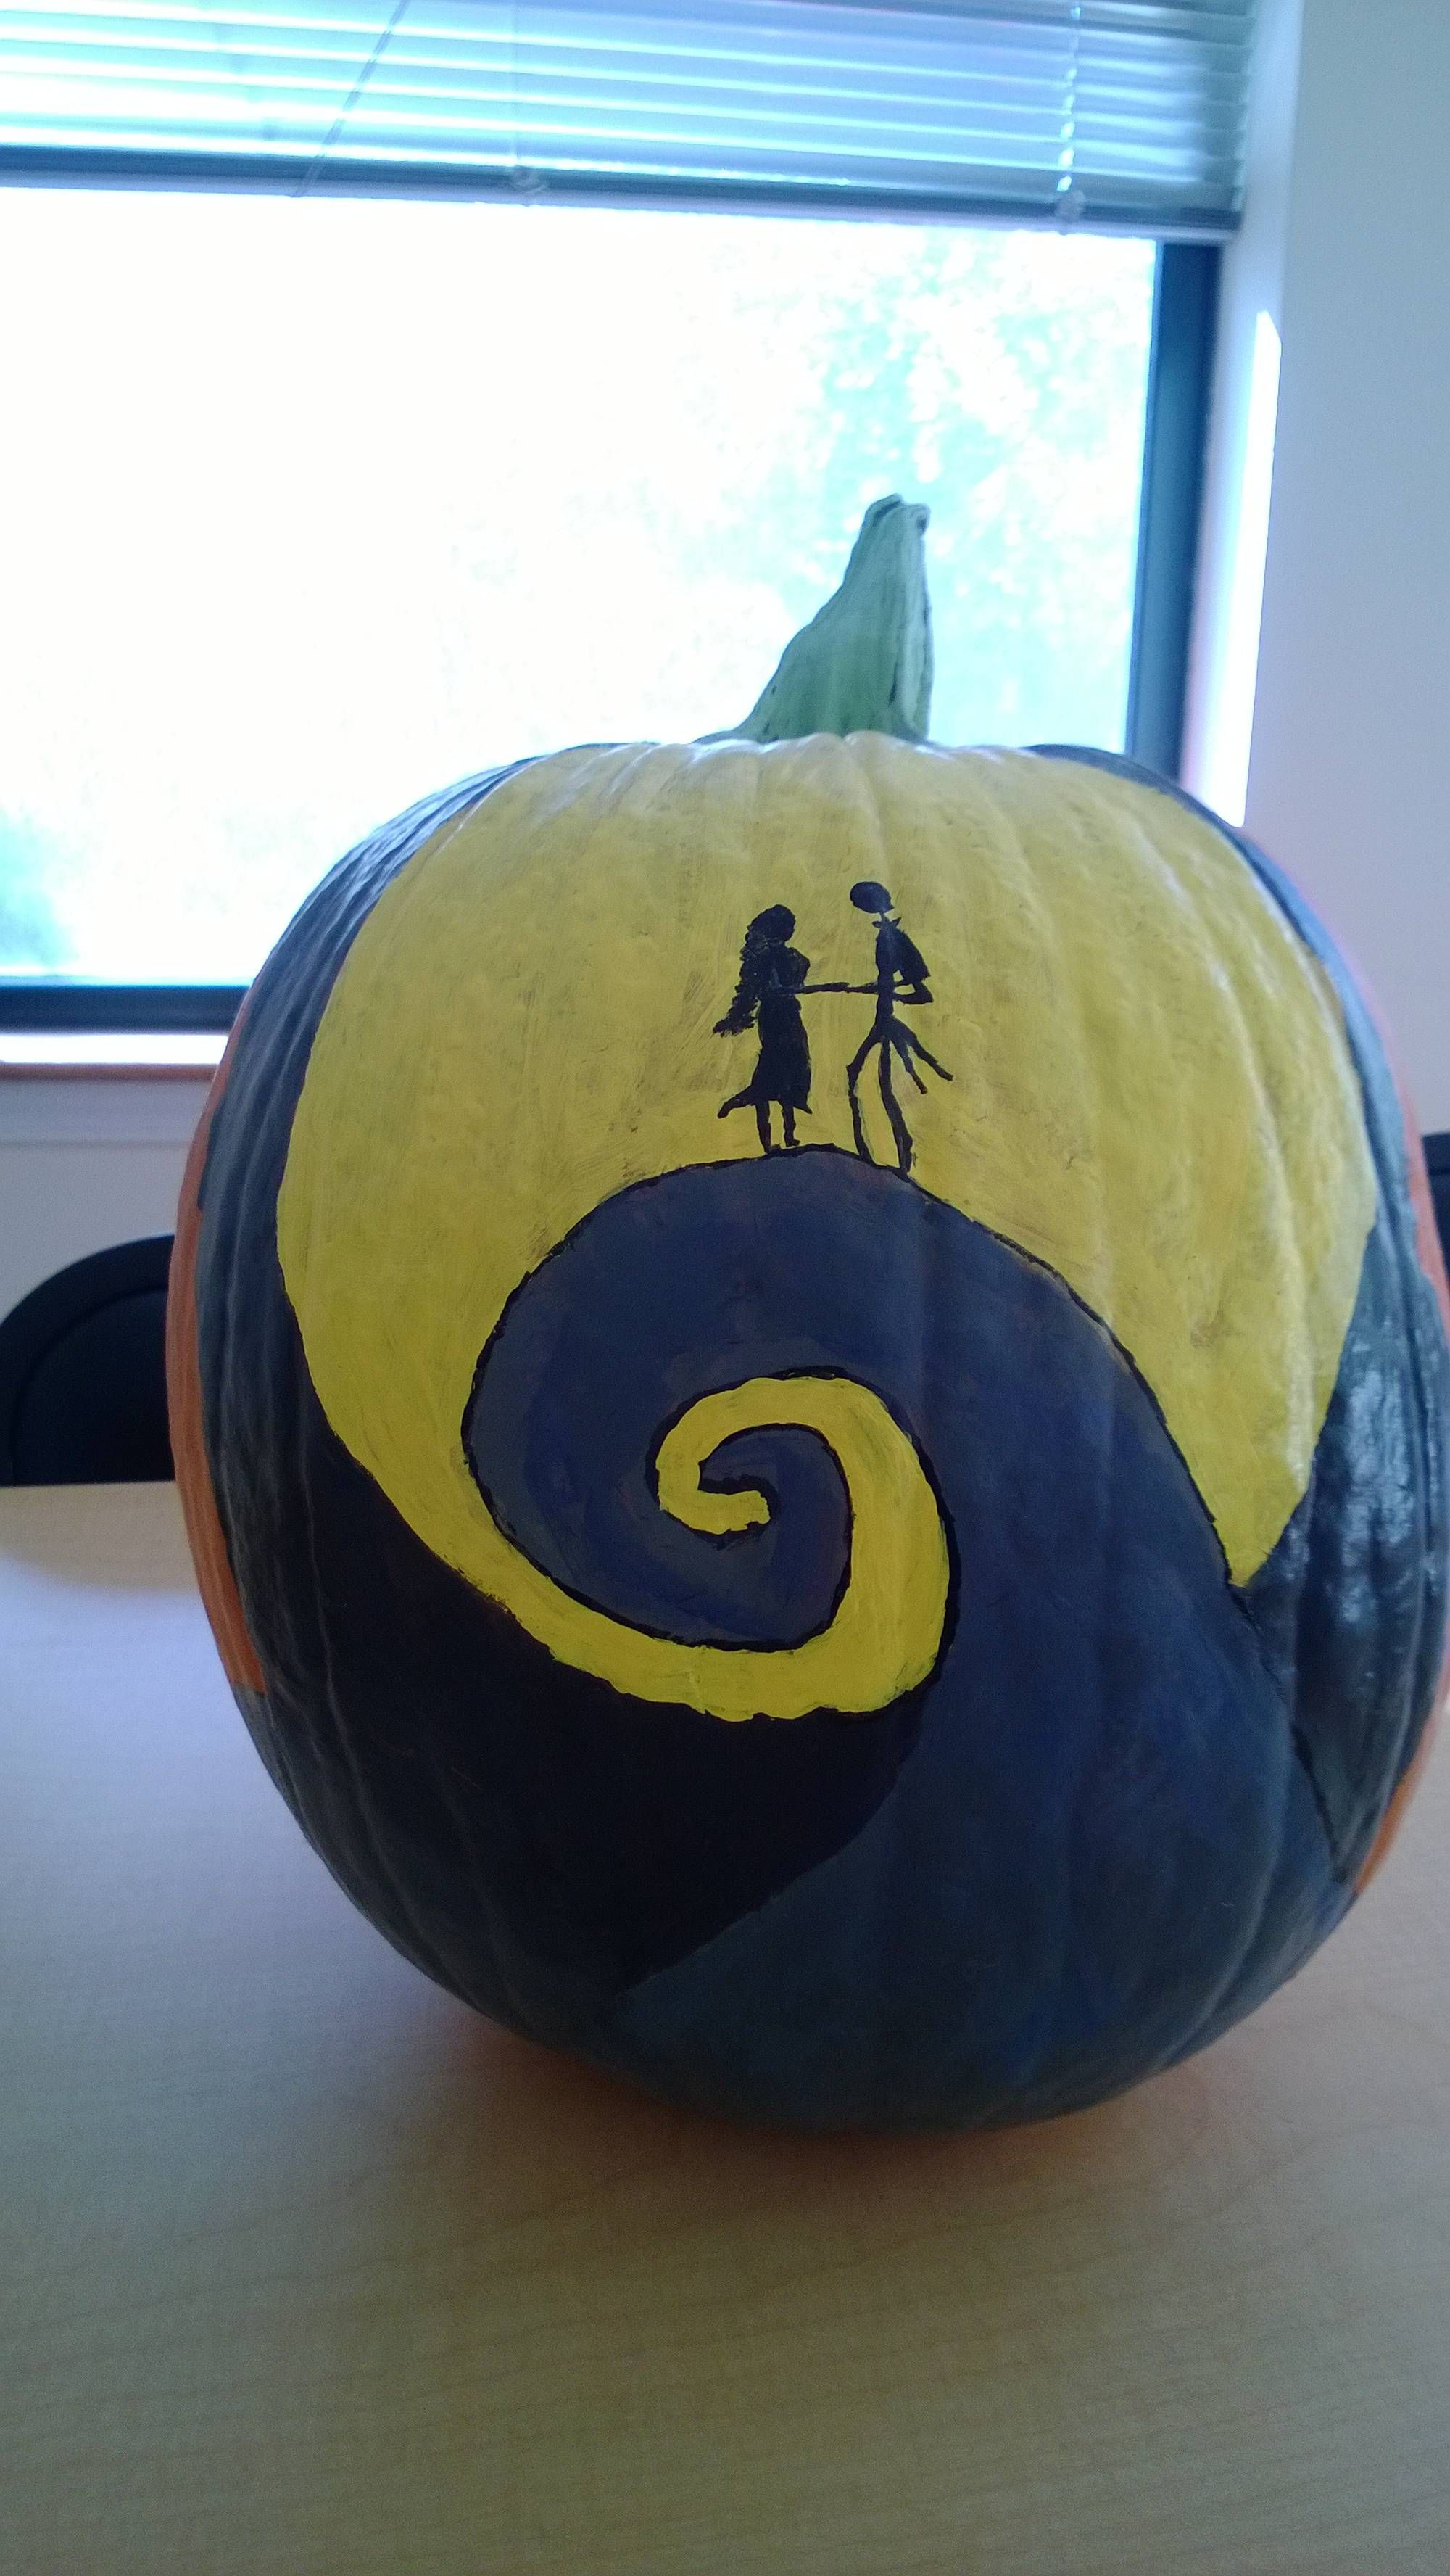 Do you guys like my painted pumpkin? Getting into the